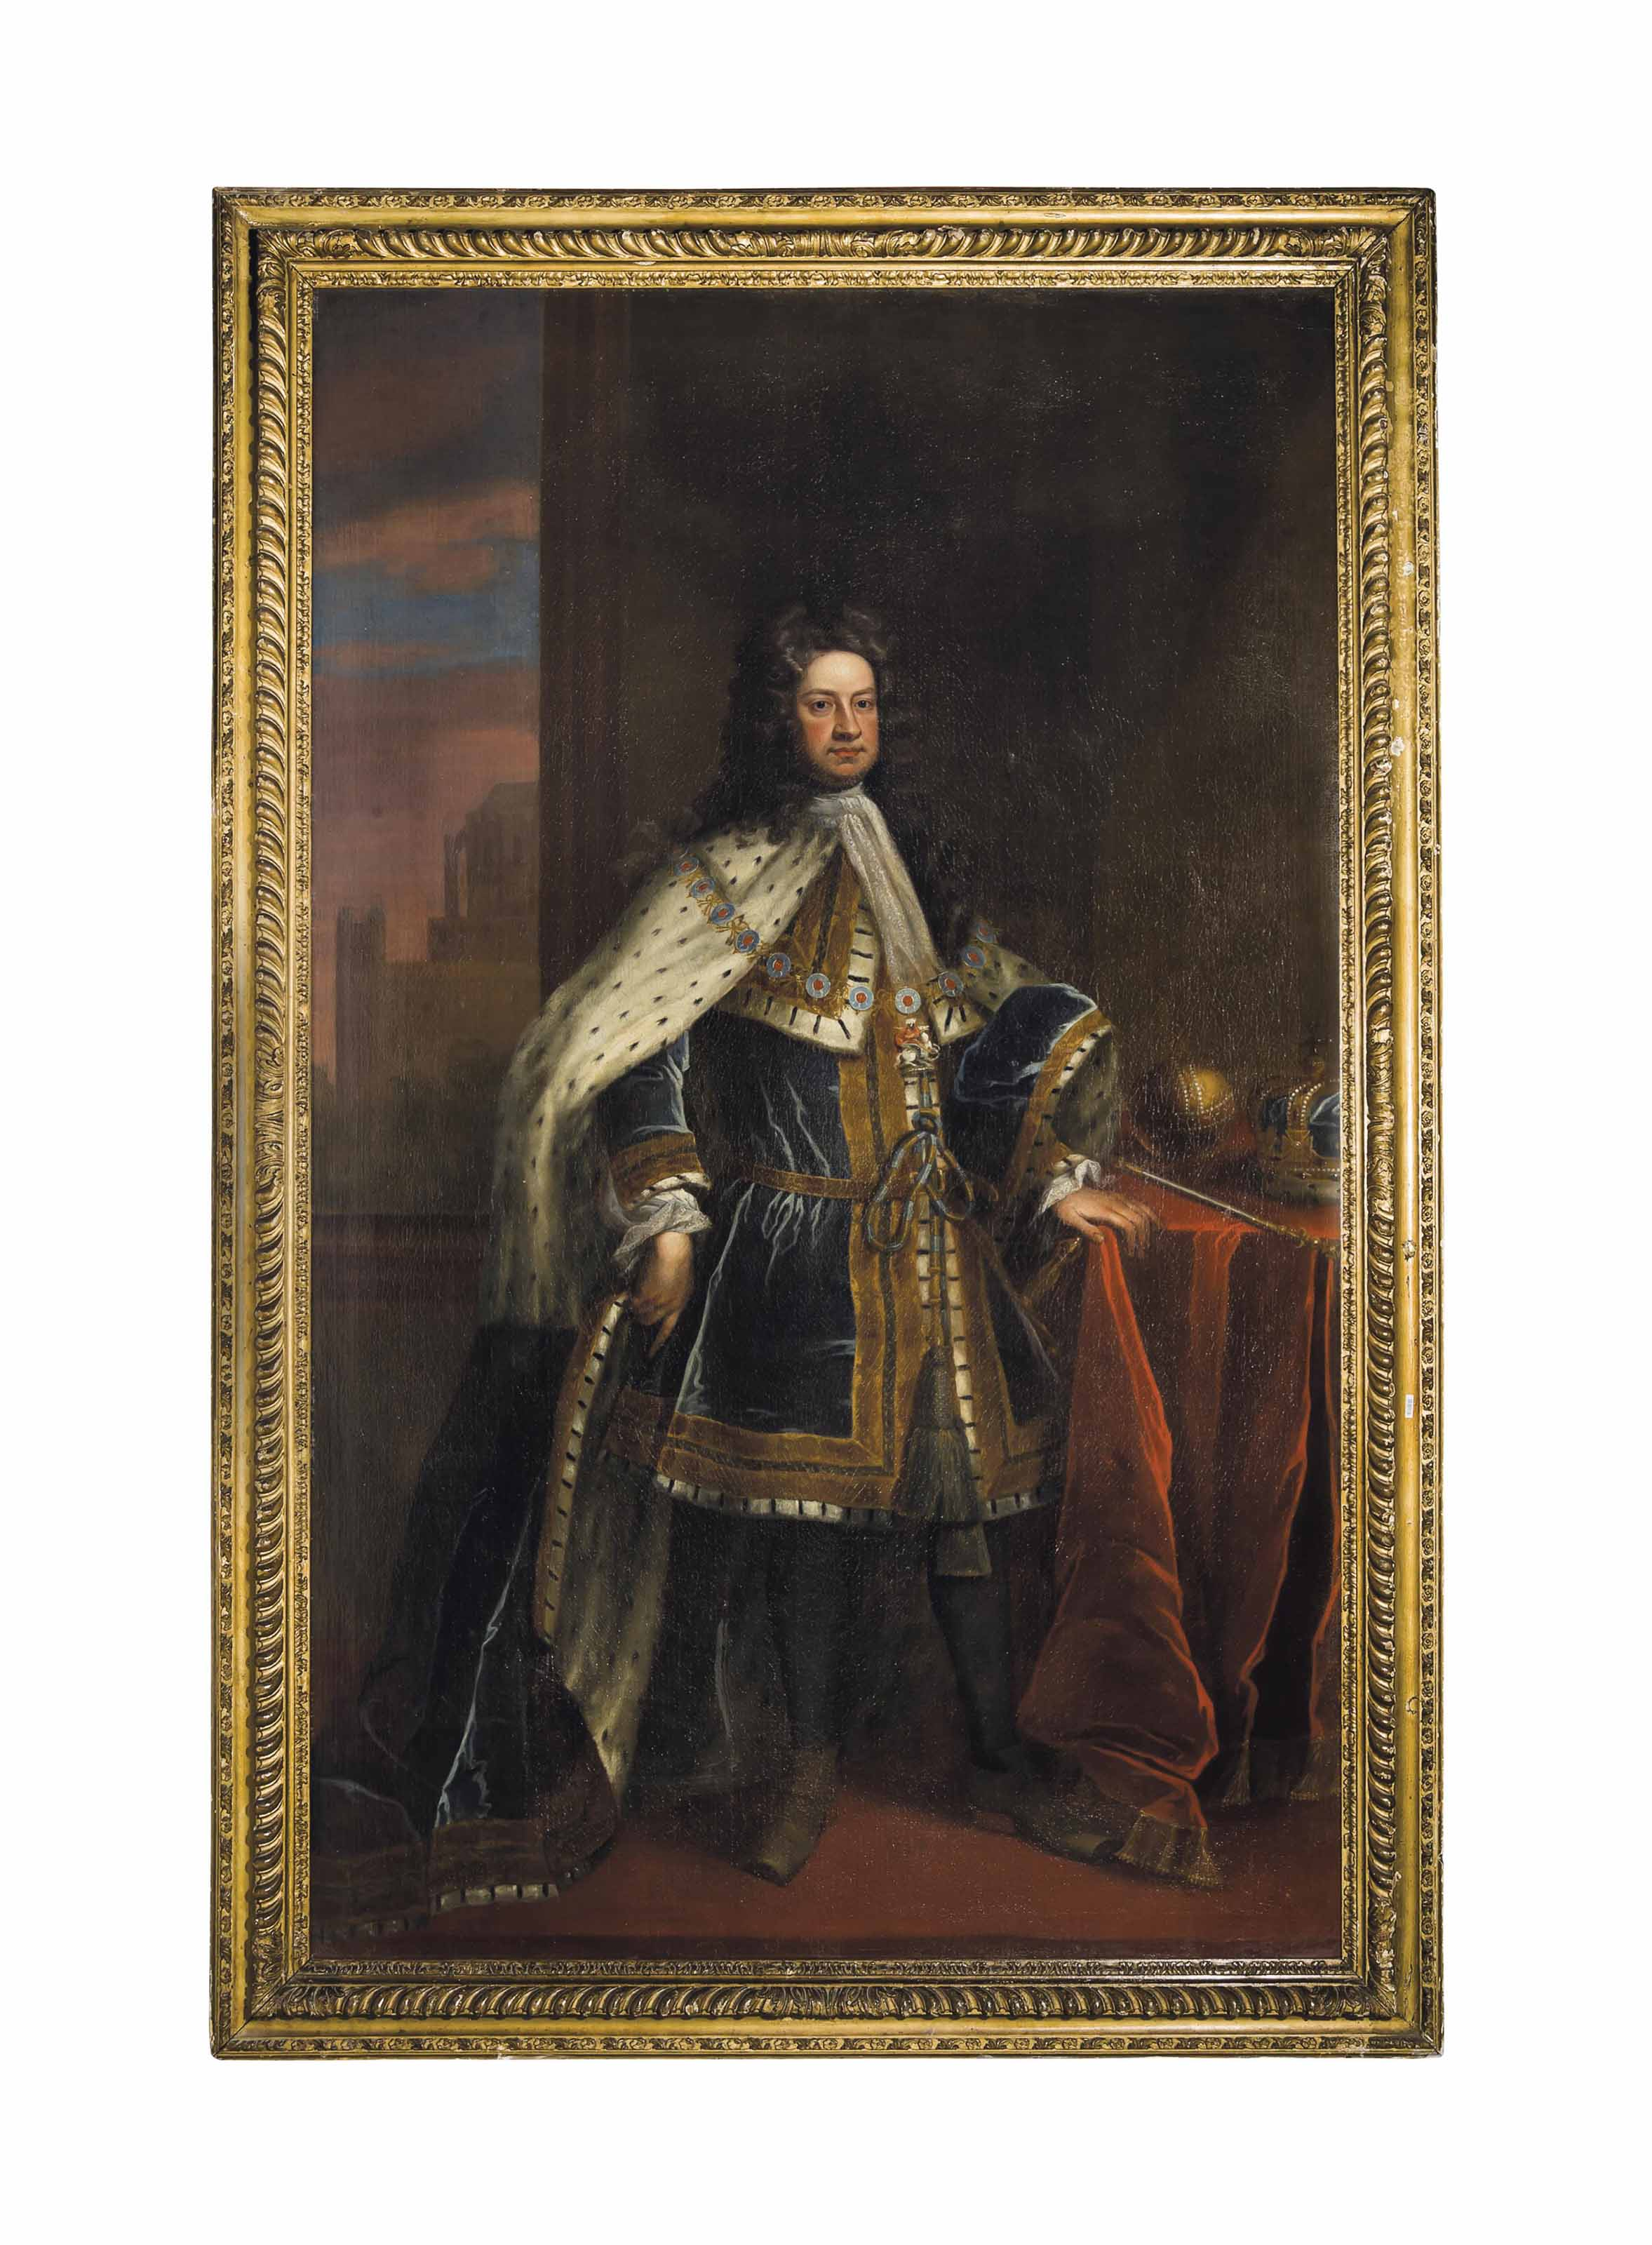 Portrait of King George I, full-length, in robes of state, wearing the collar of the Garter, the crown and sceptre on a table to his right, the east end of Westminster Abbey and St. Stephen's Chapel beyond